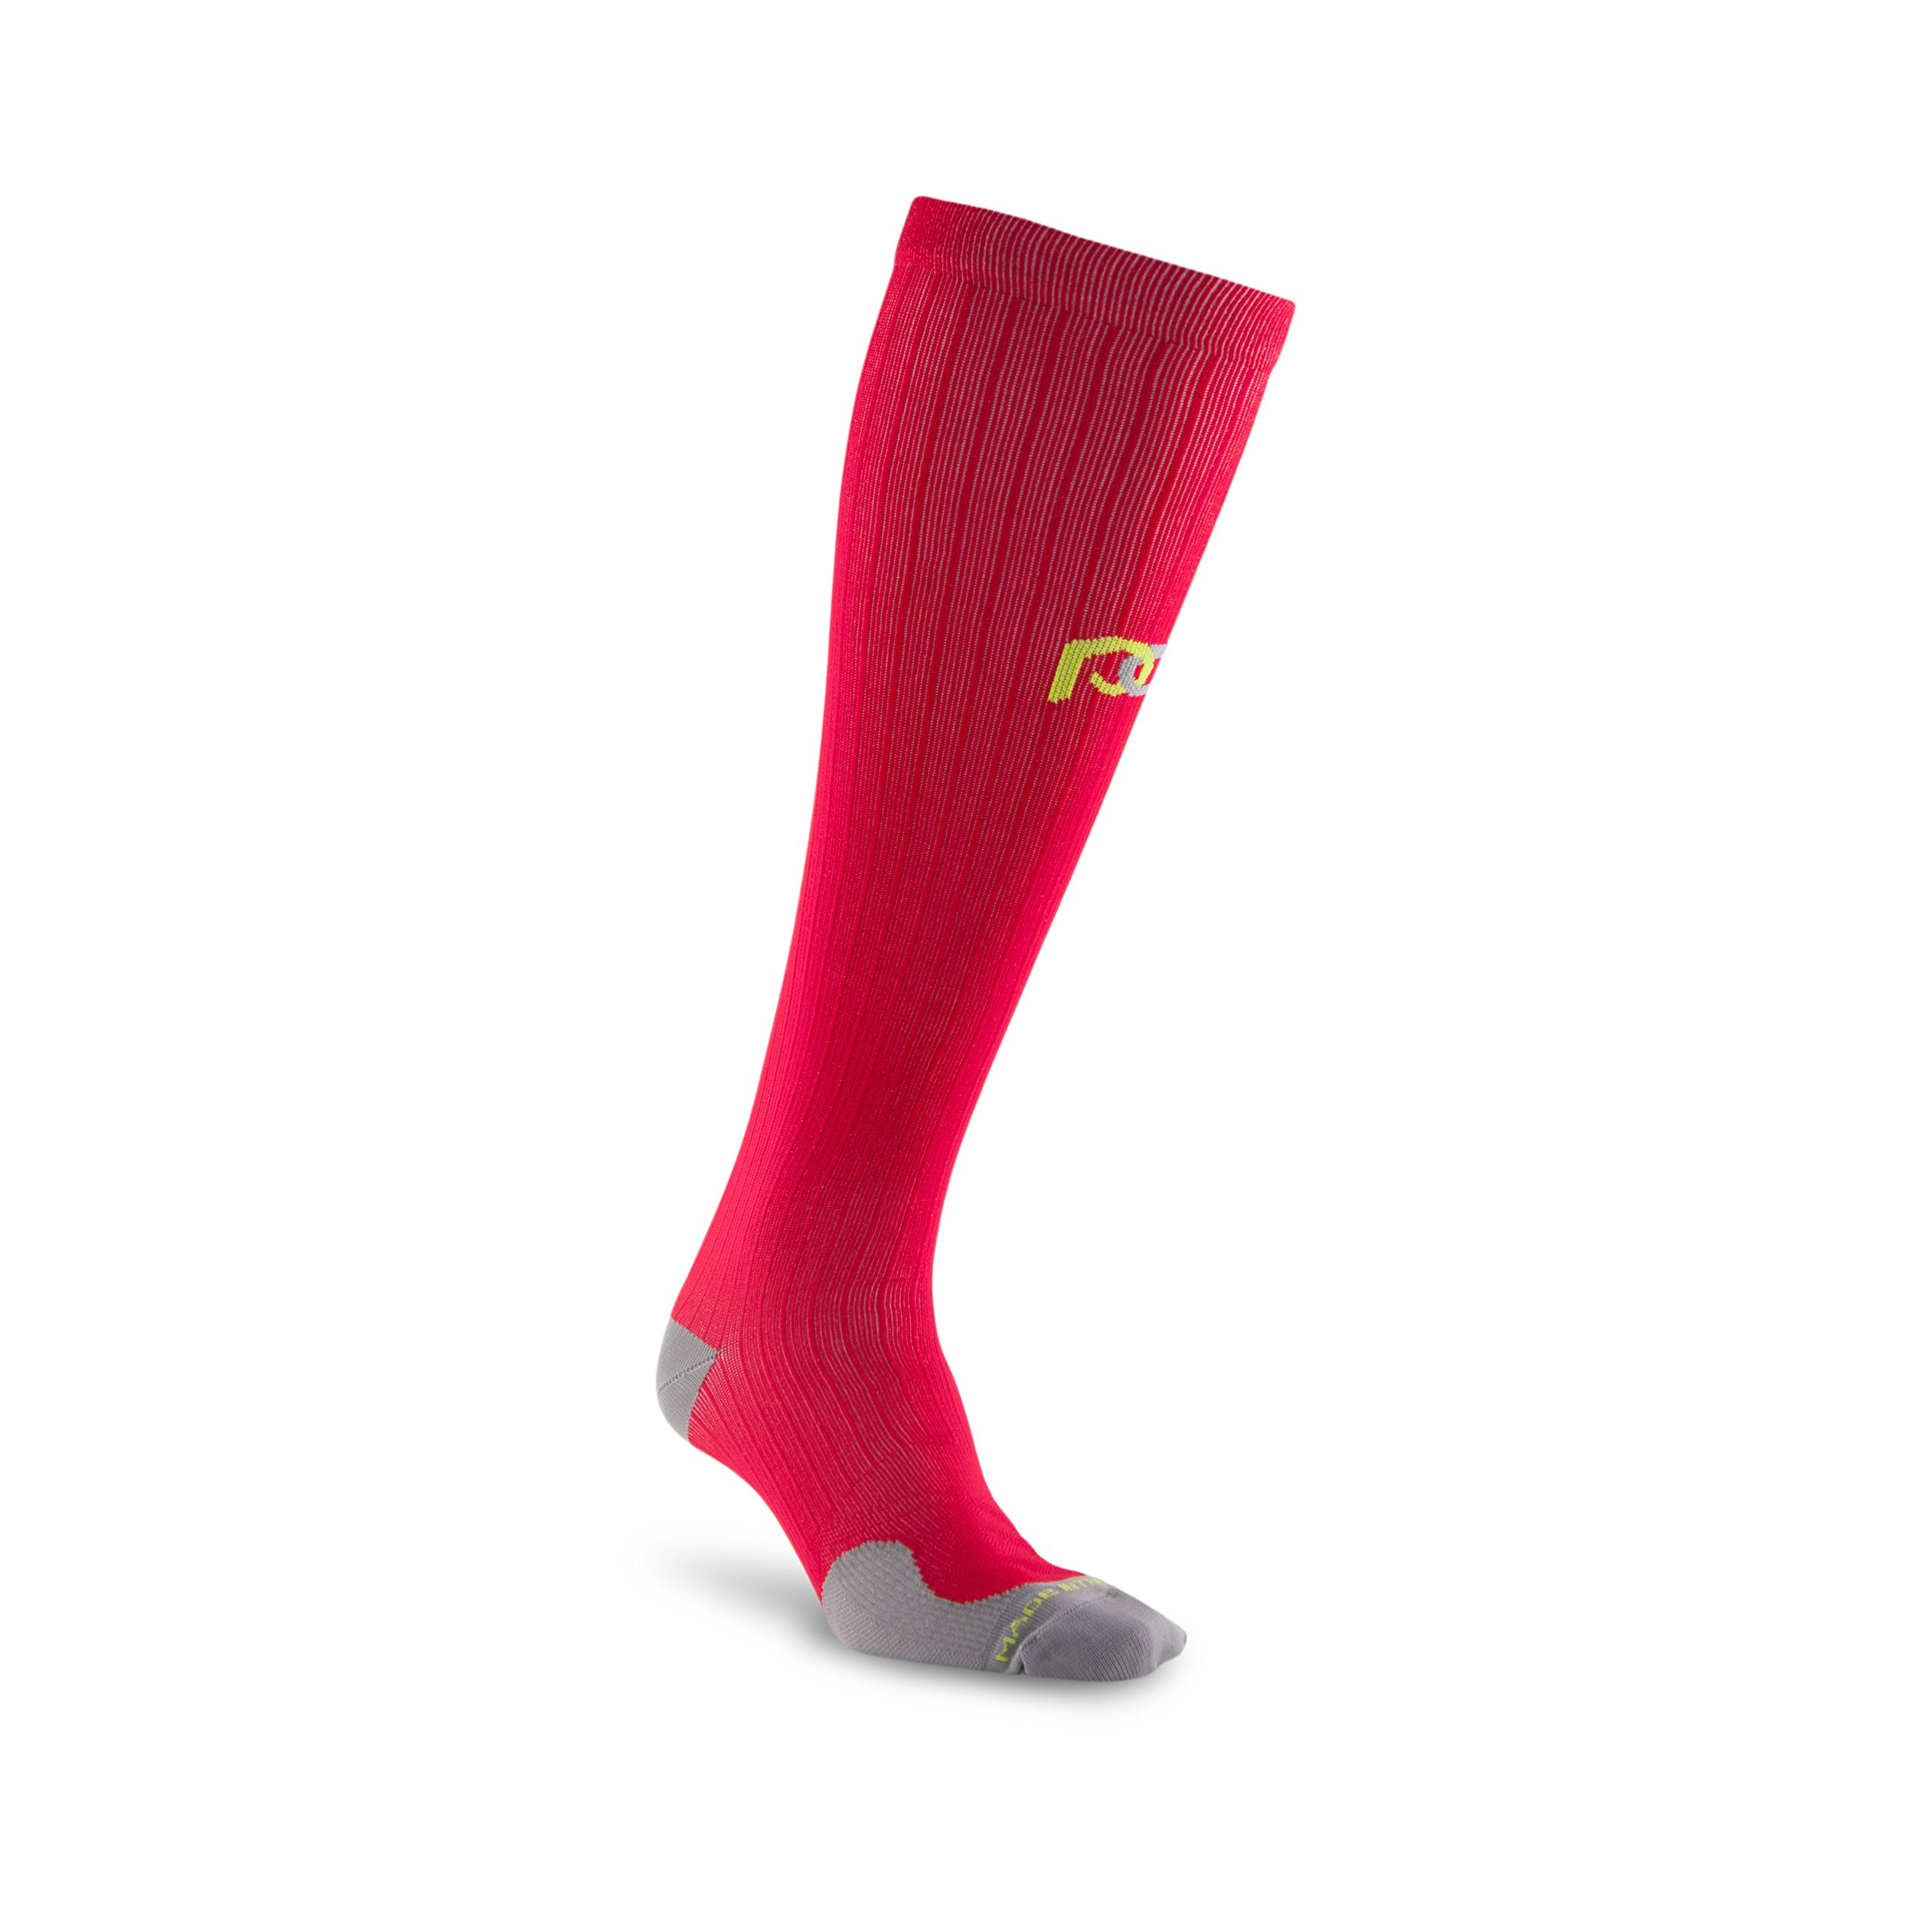 PRO Compression: Marathon (Full-Length, Over-the-Calf) Compression Socks, Red, X-Small by PRO Compression